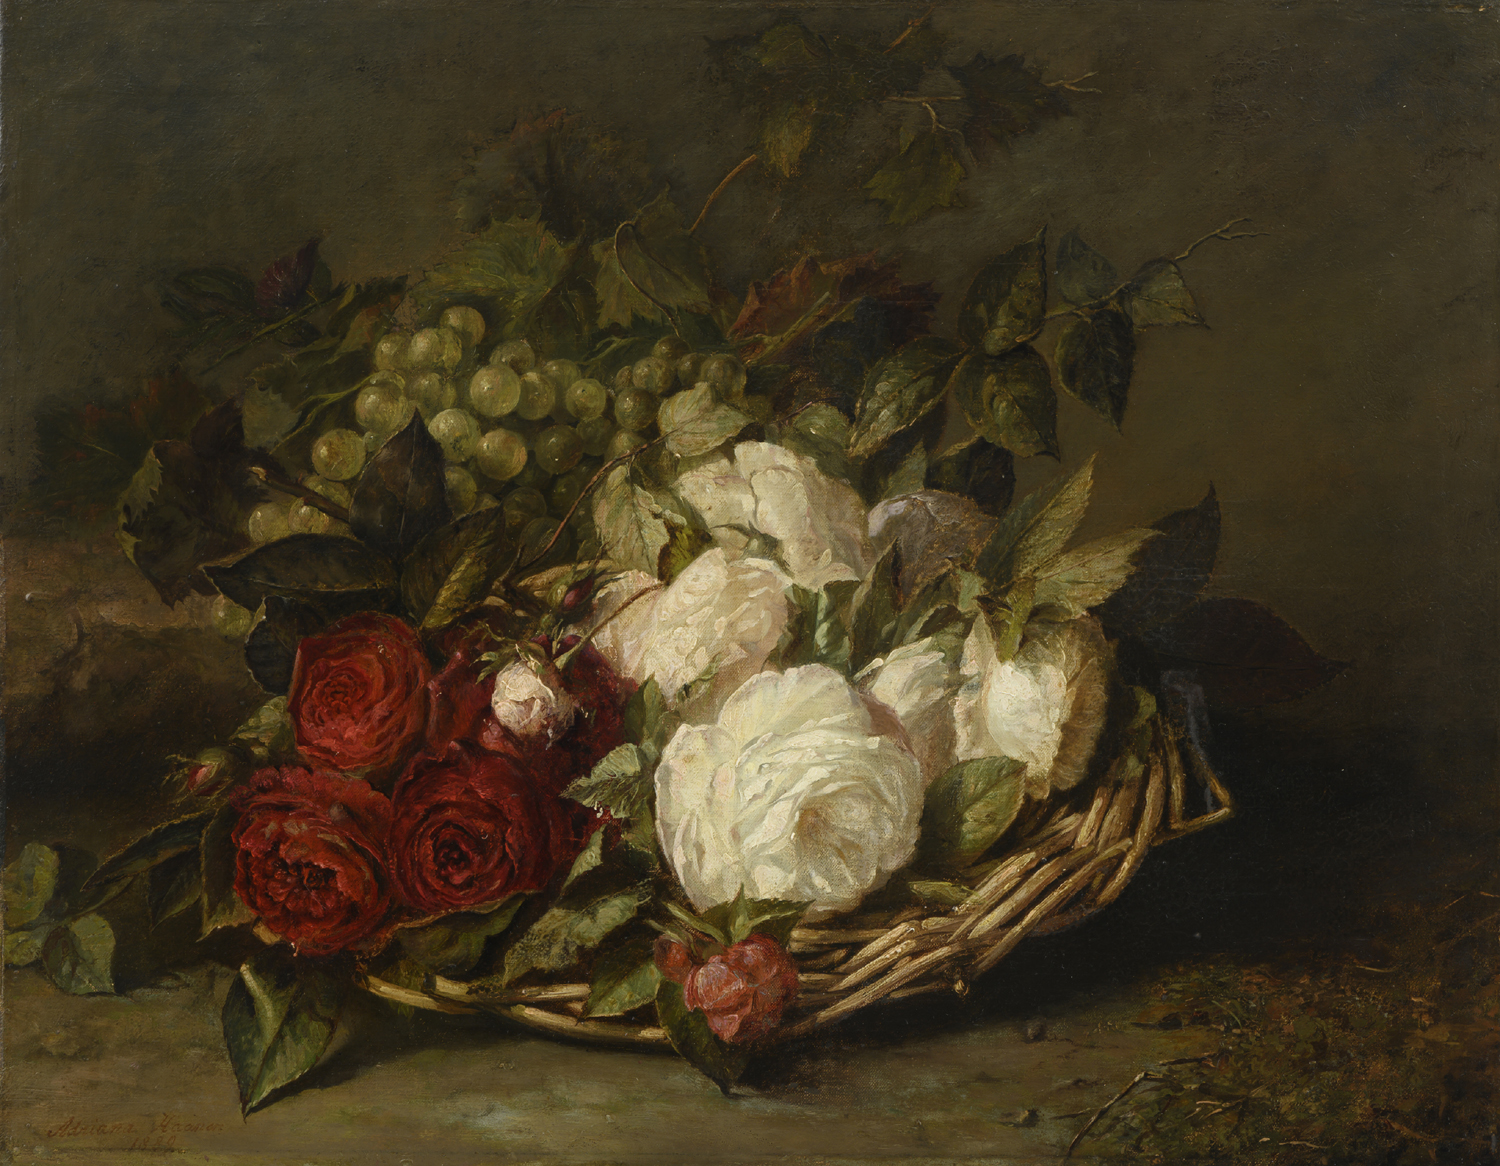 Adriana Haanen | A still life with white and red roses and grapes | Kunsthandel Bies | Bies Gallery